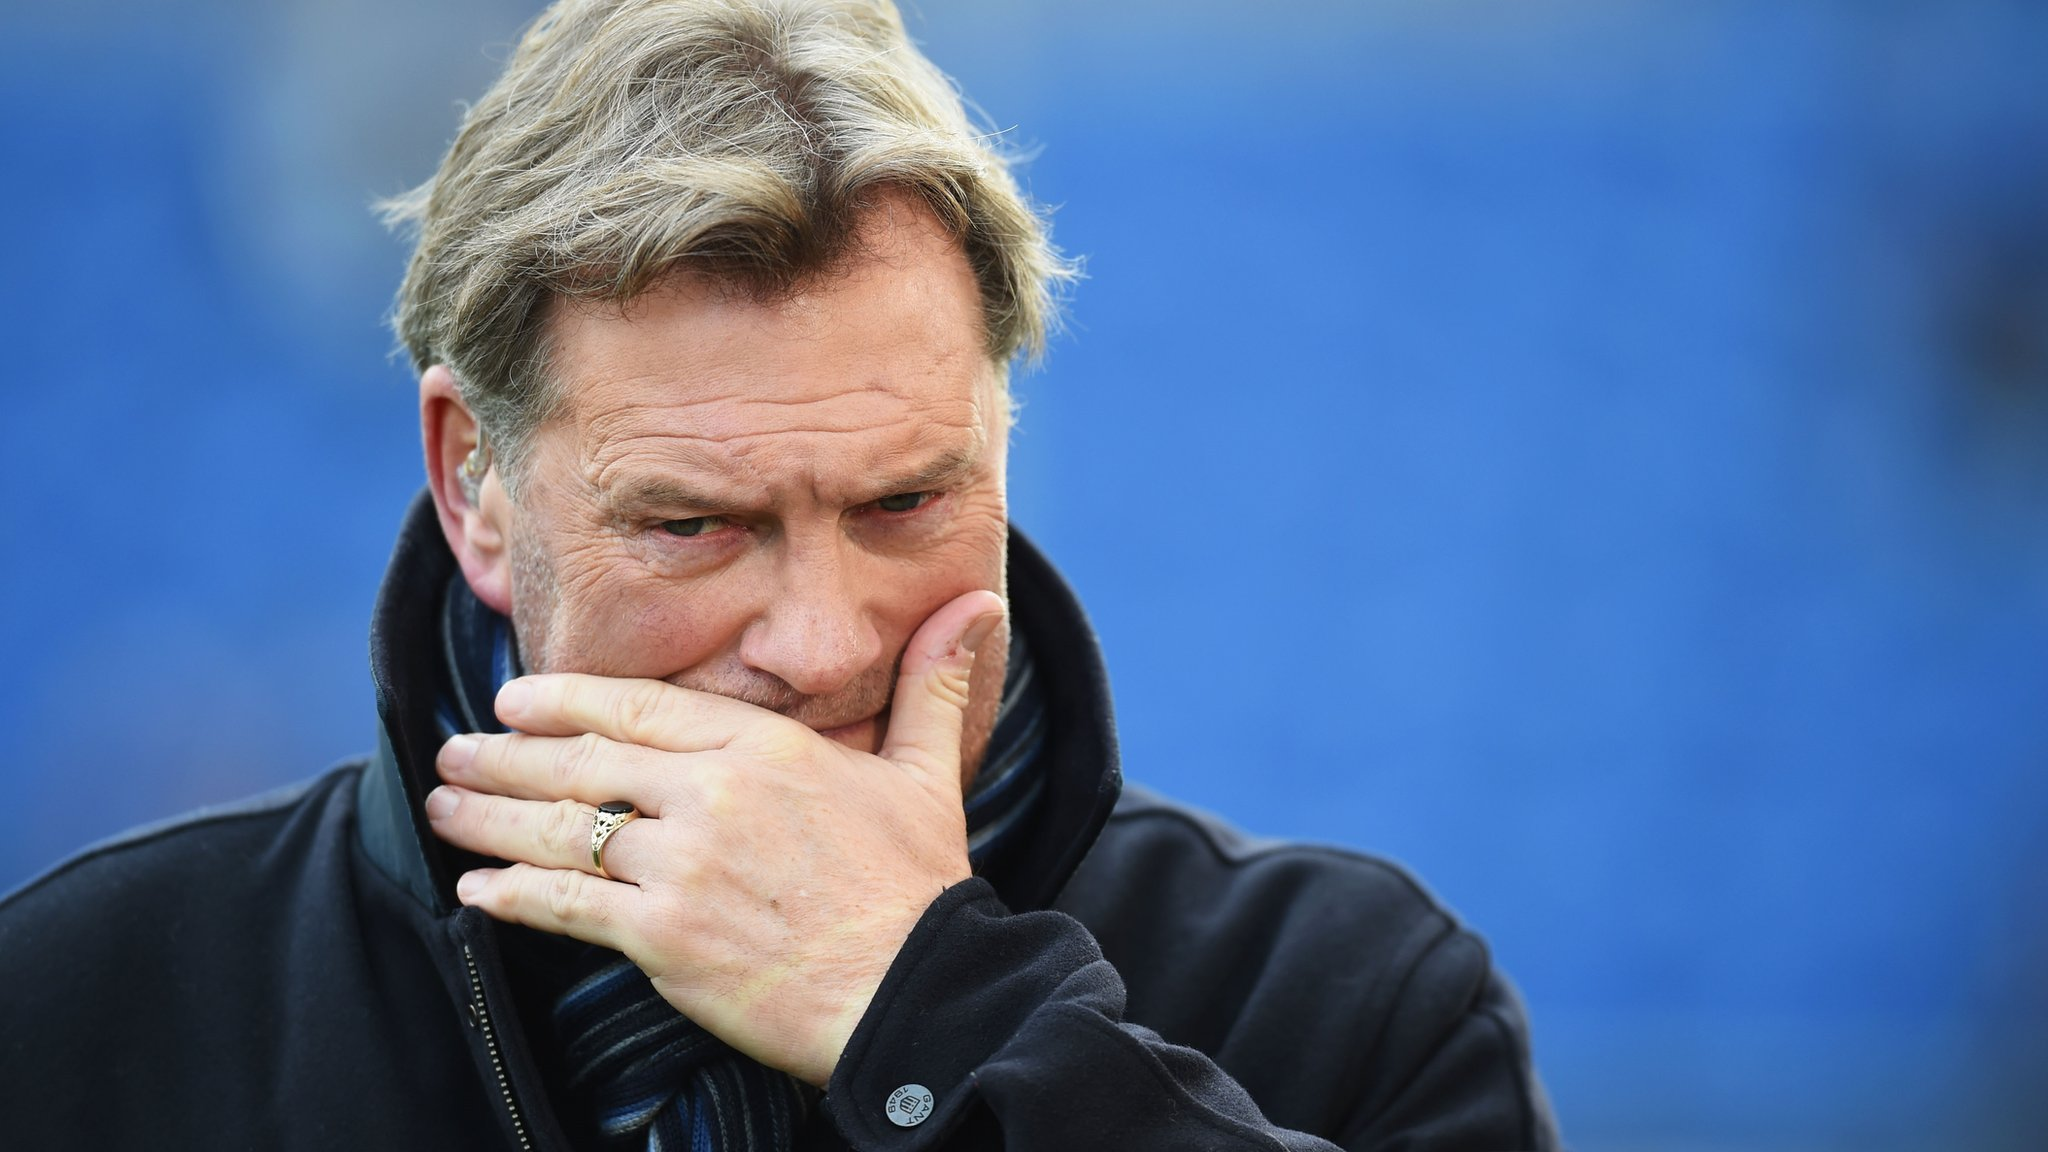 Glenn Hoddle says he is 'lucky' to be alive after cardiac arrest | BBC